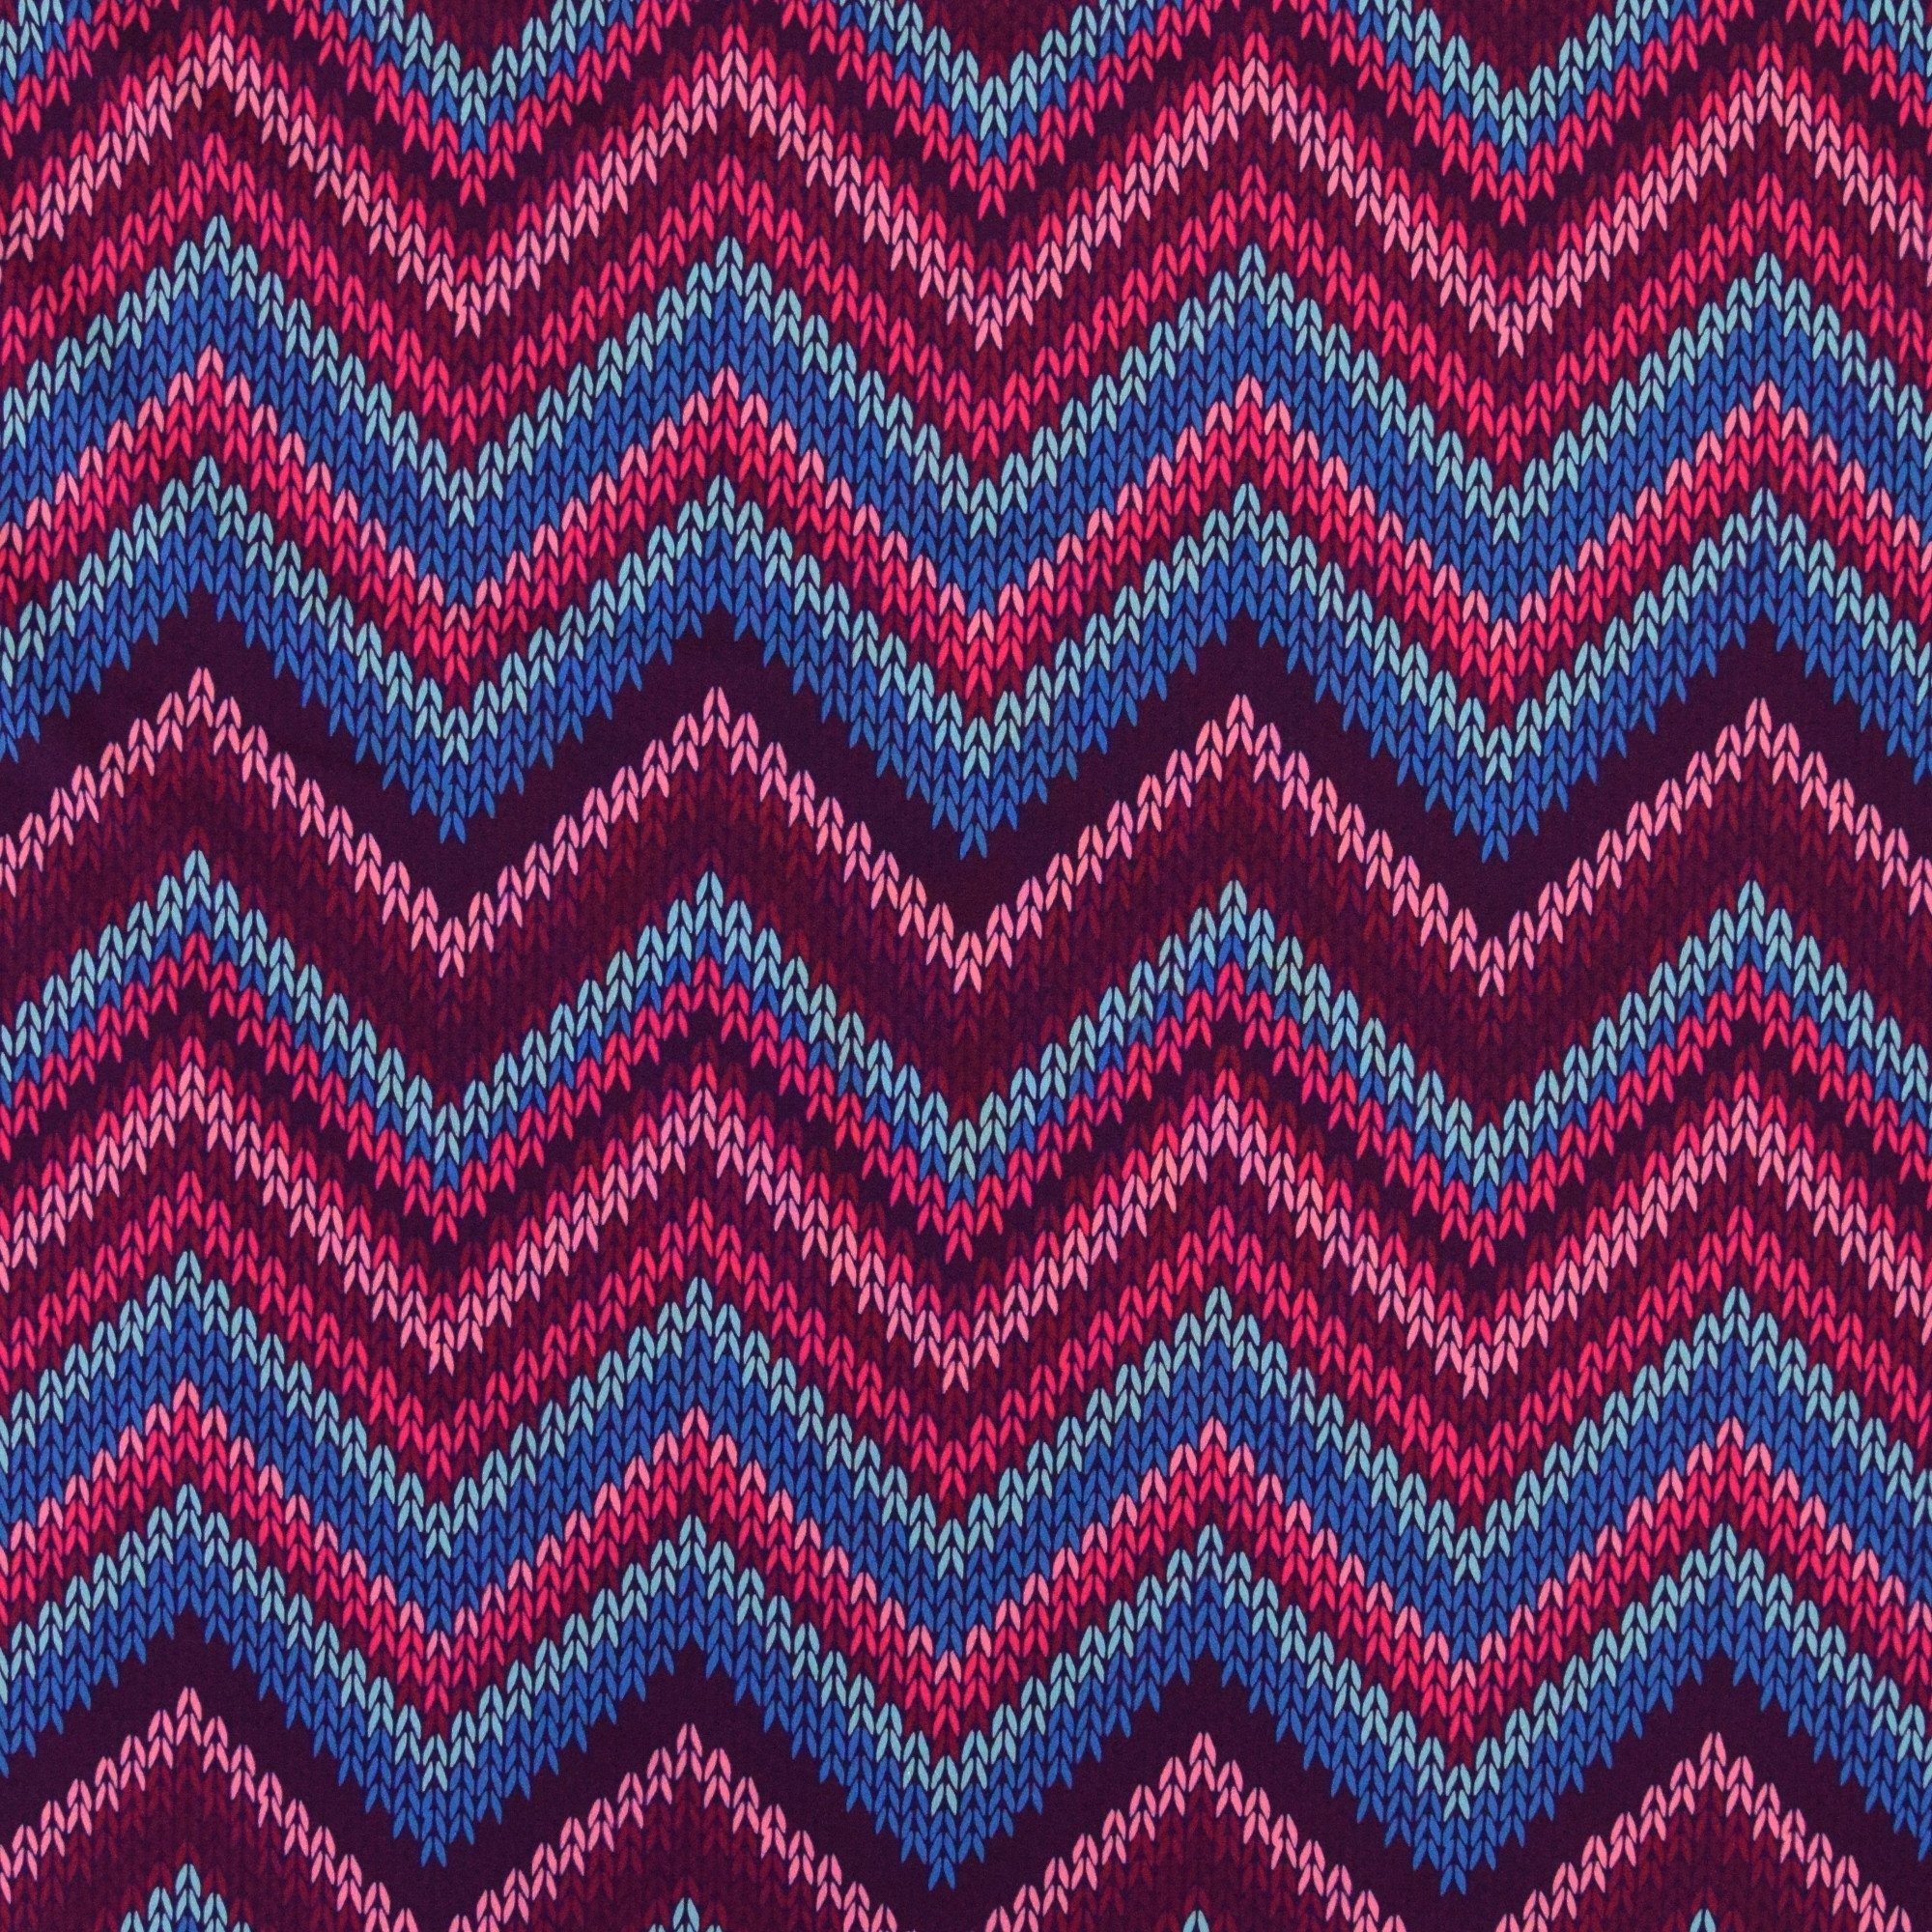 Chevron Knitting Pattern Softshell Chevron Knit Motif Bright Pink Multicolour Fabrics Hemmers